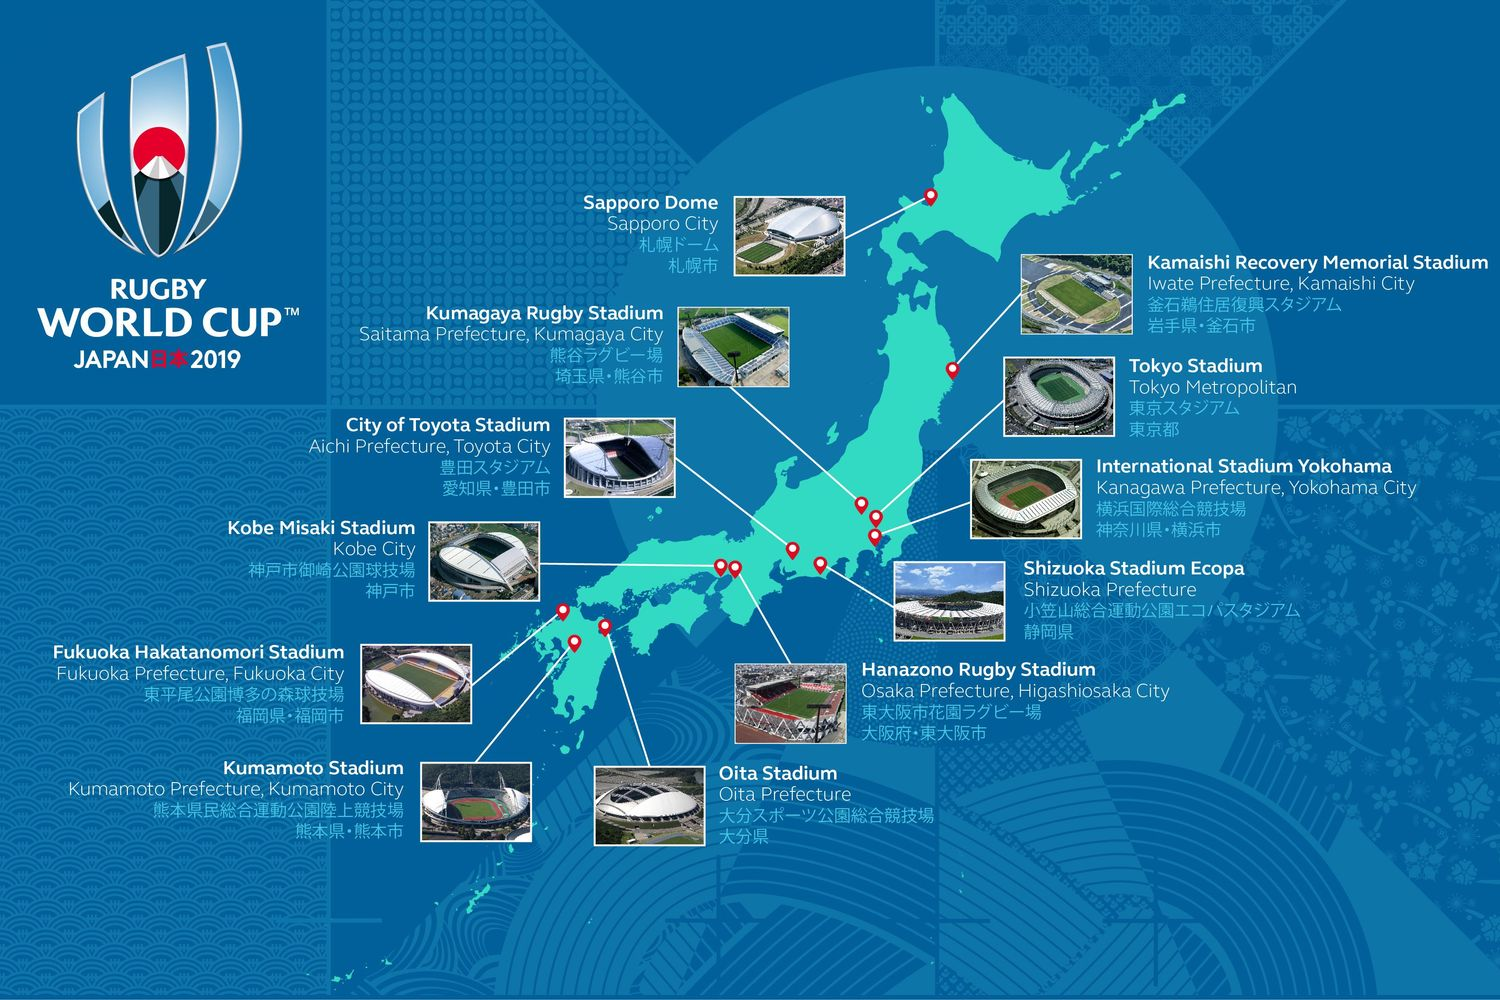 Things to Do in Host Cities during Rugby World Cup 2019: Tokyo, Osaka, Yokohama, etc